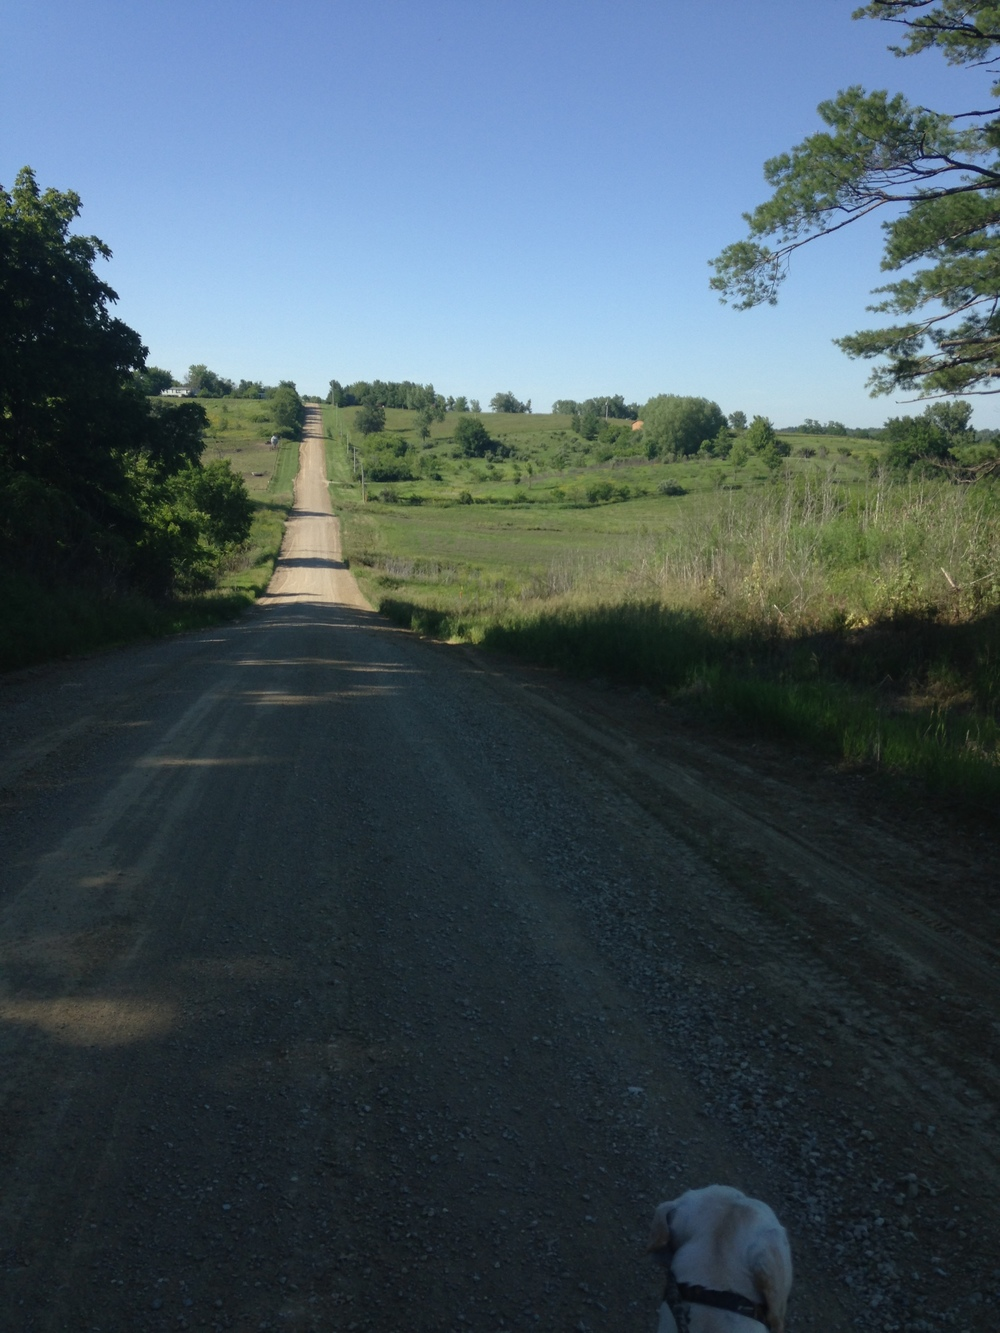 Going-Back-Down-the-Gravel-Road.jpg